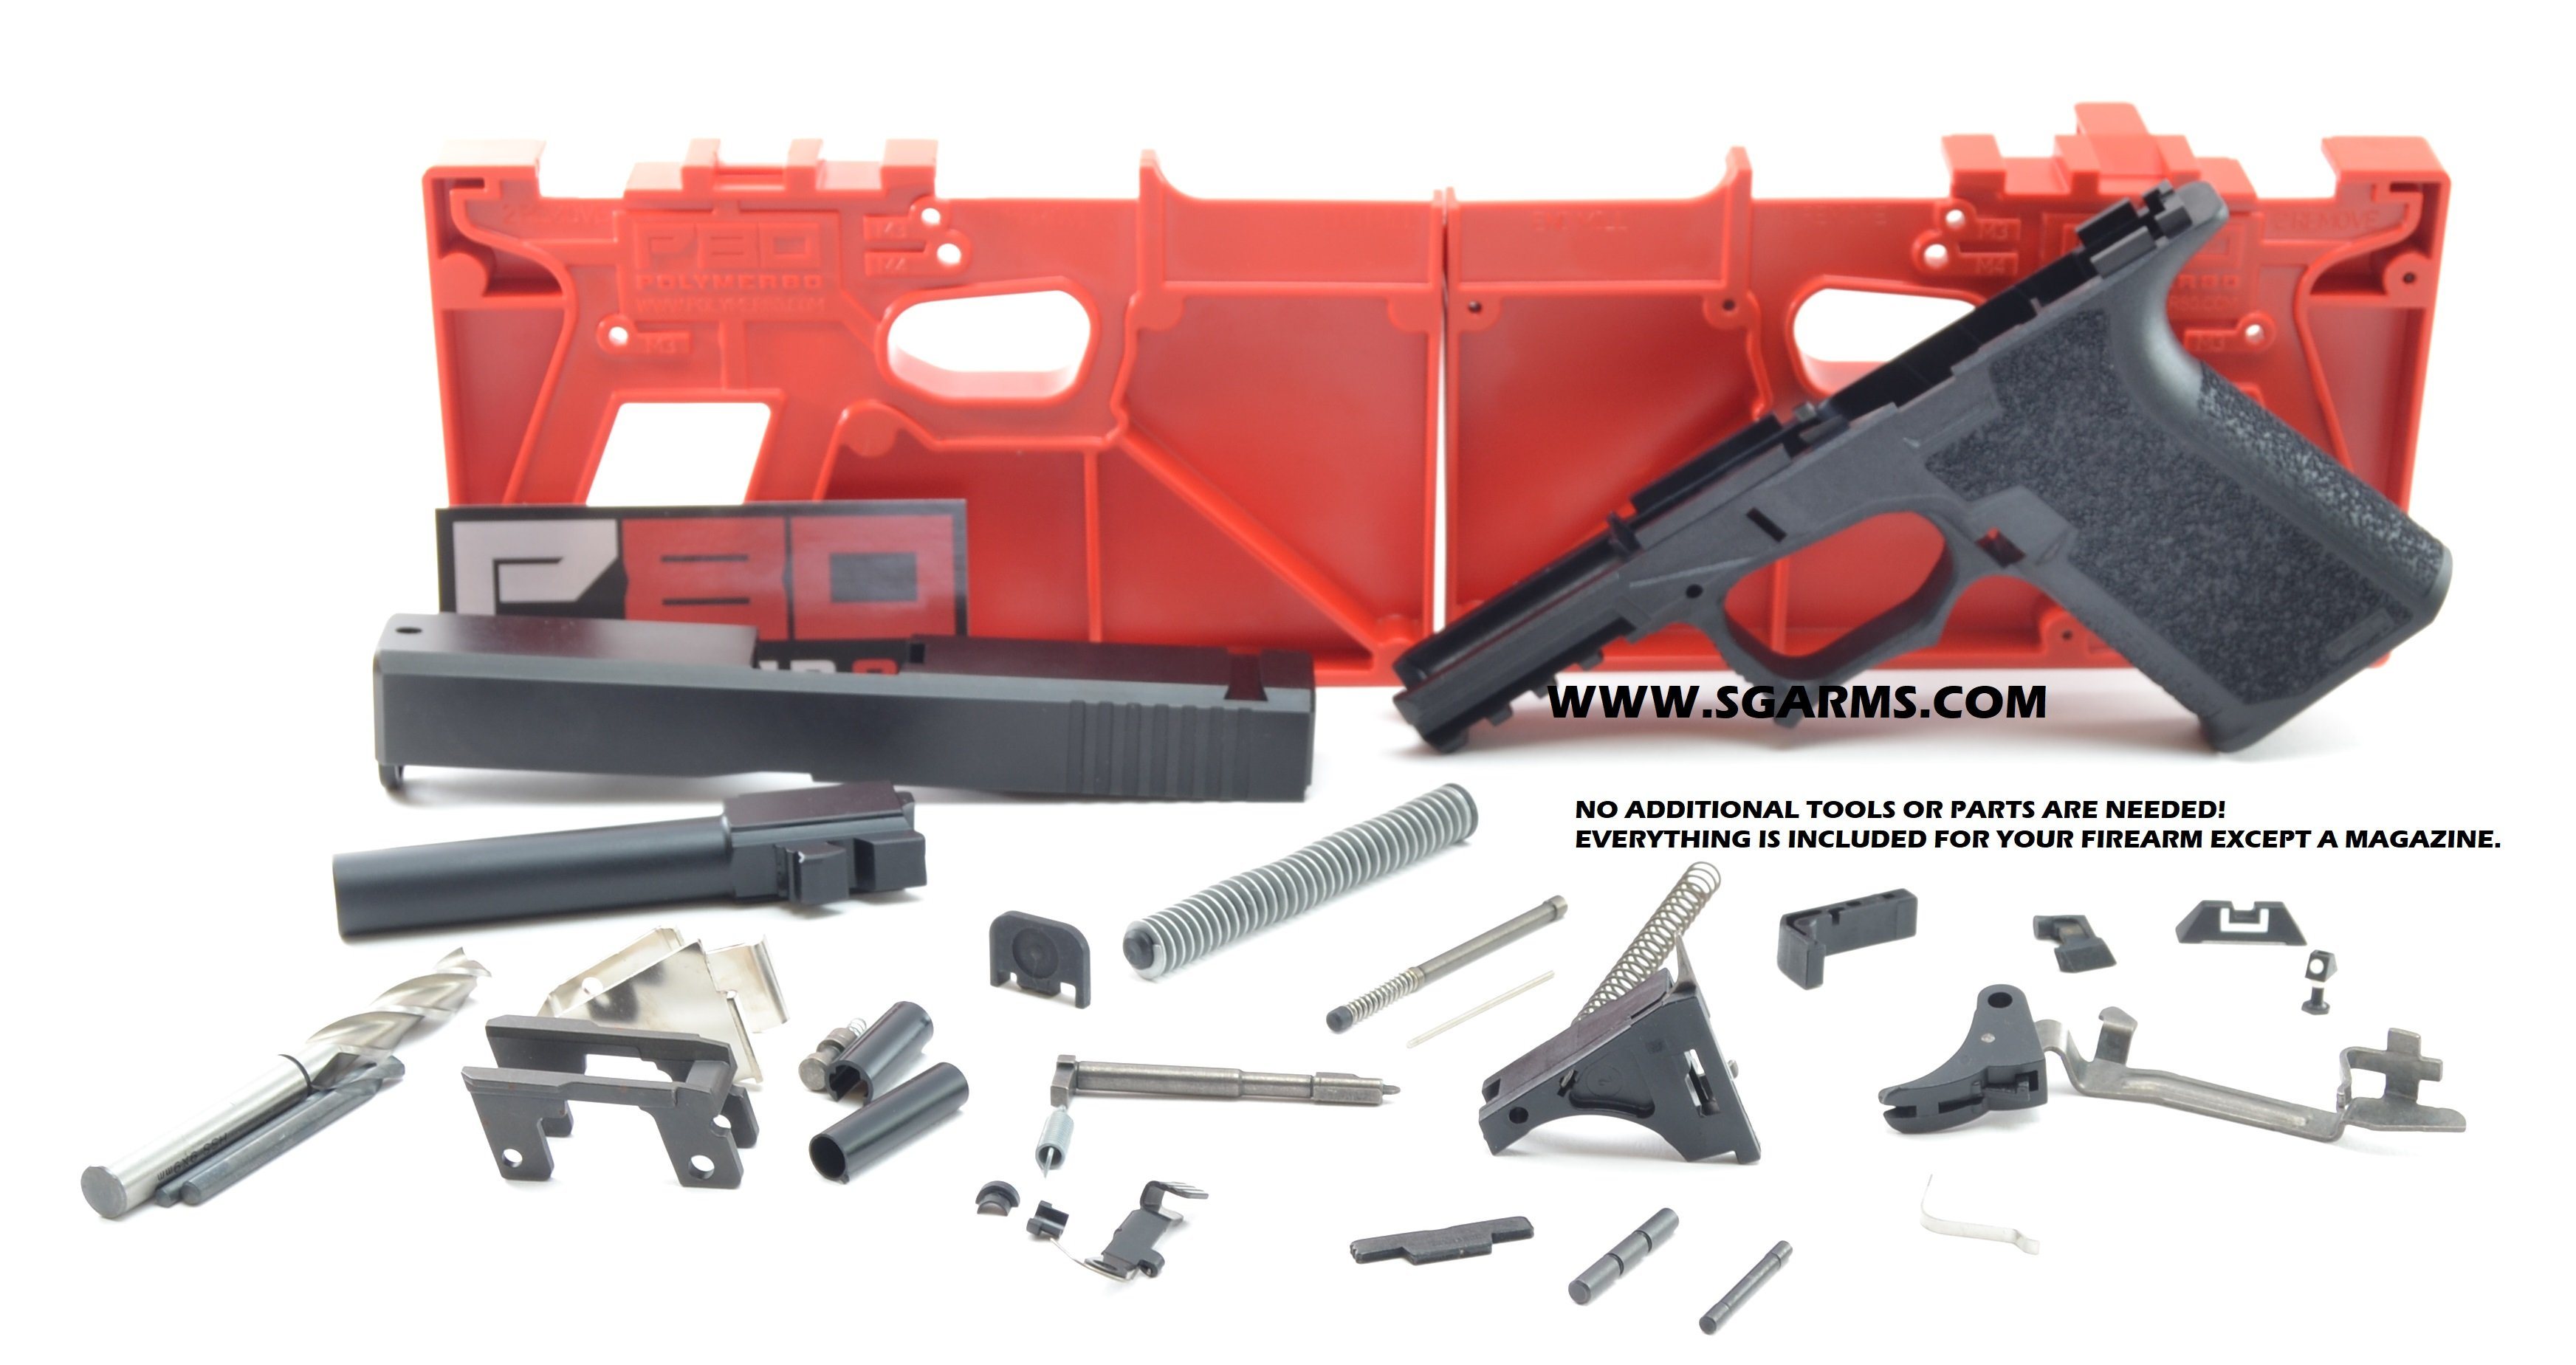 After COUPON CODE Full Size P80 Build KITS for- $429